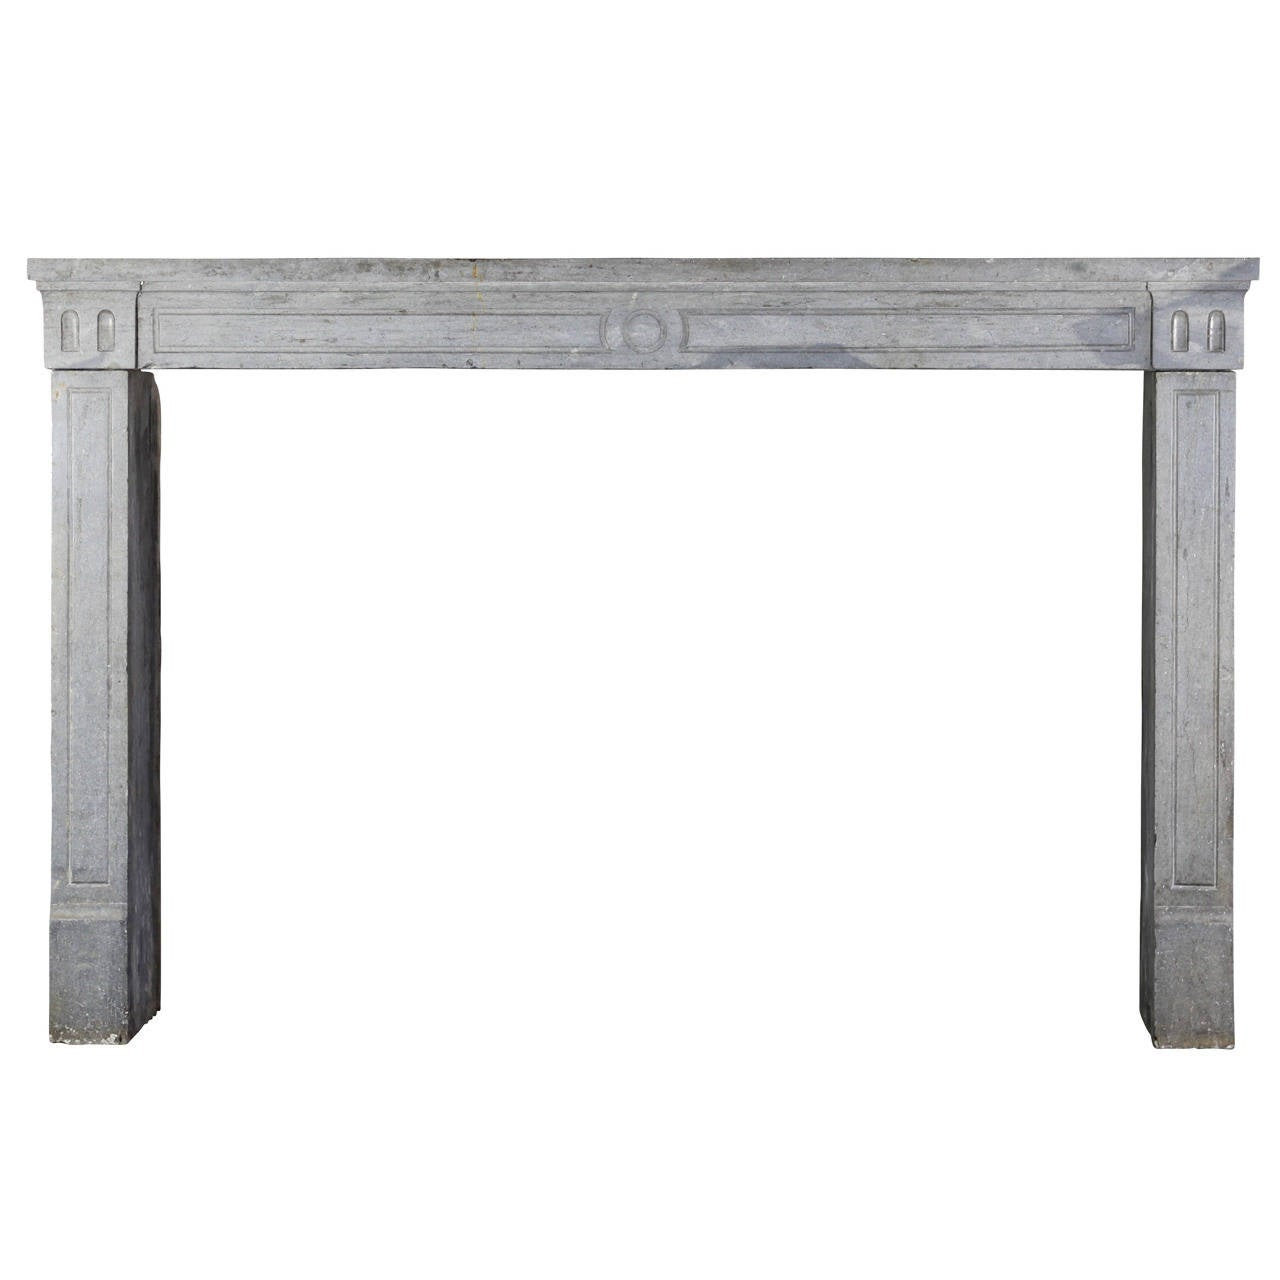 18th Century Period Blue-Grey French Marble-Stone Antique Fireplace mantel